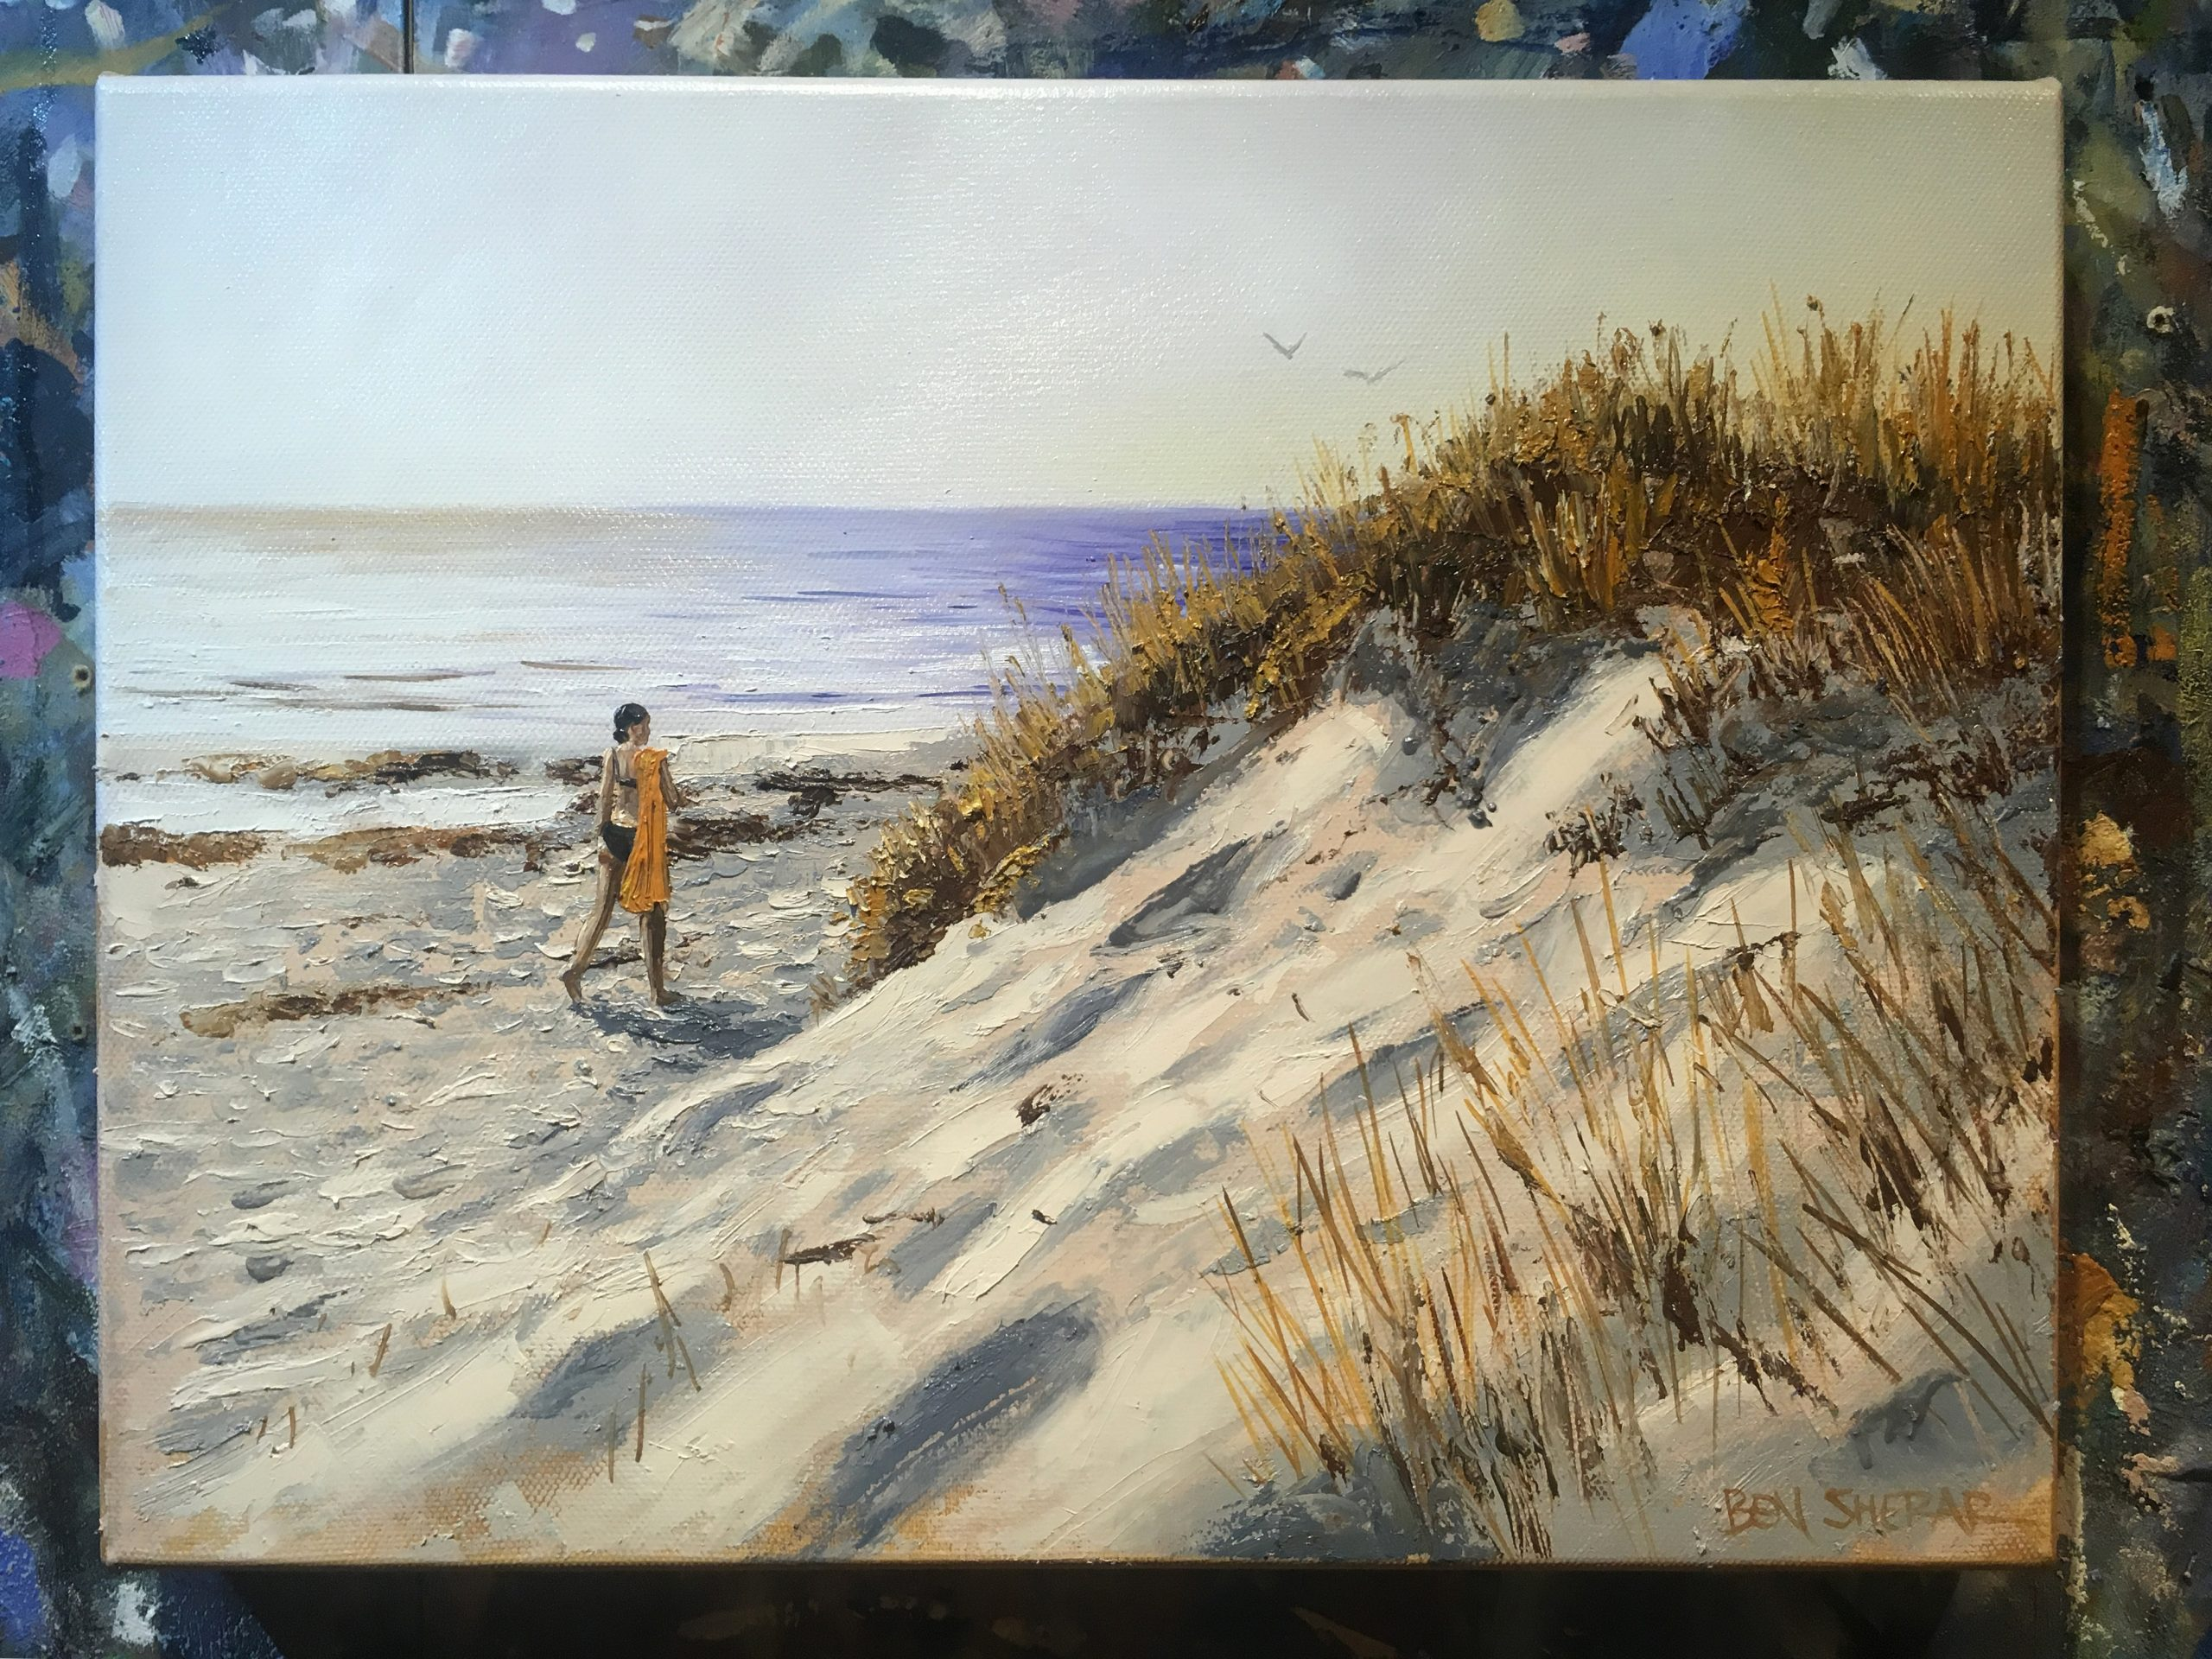 An original oil painting of a woman walking on a beach at sunset by artists Ben Sherar